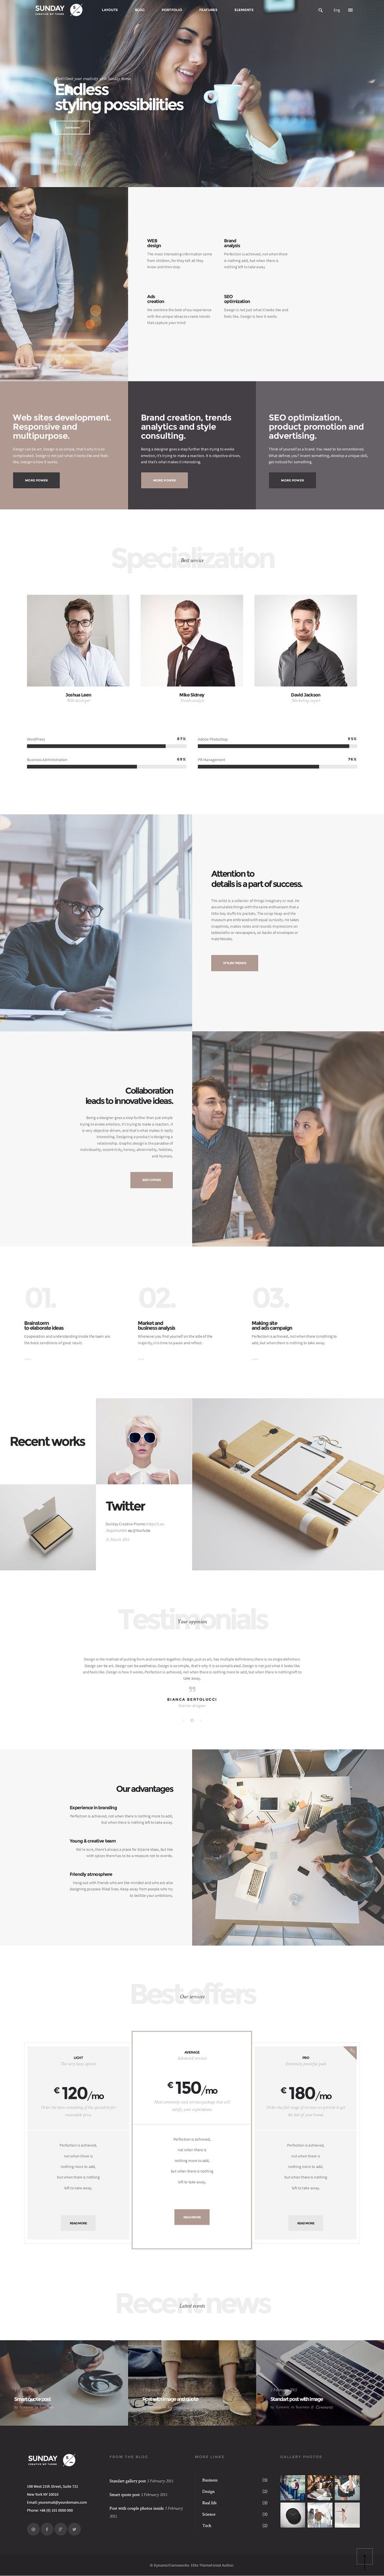 Sunday - Highly Functional Multifaceted WP Theme on Behance